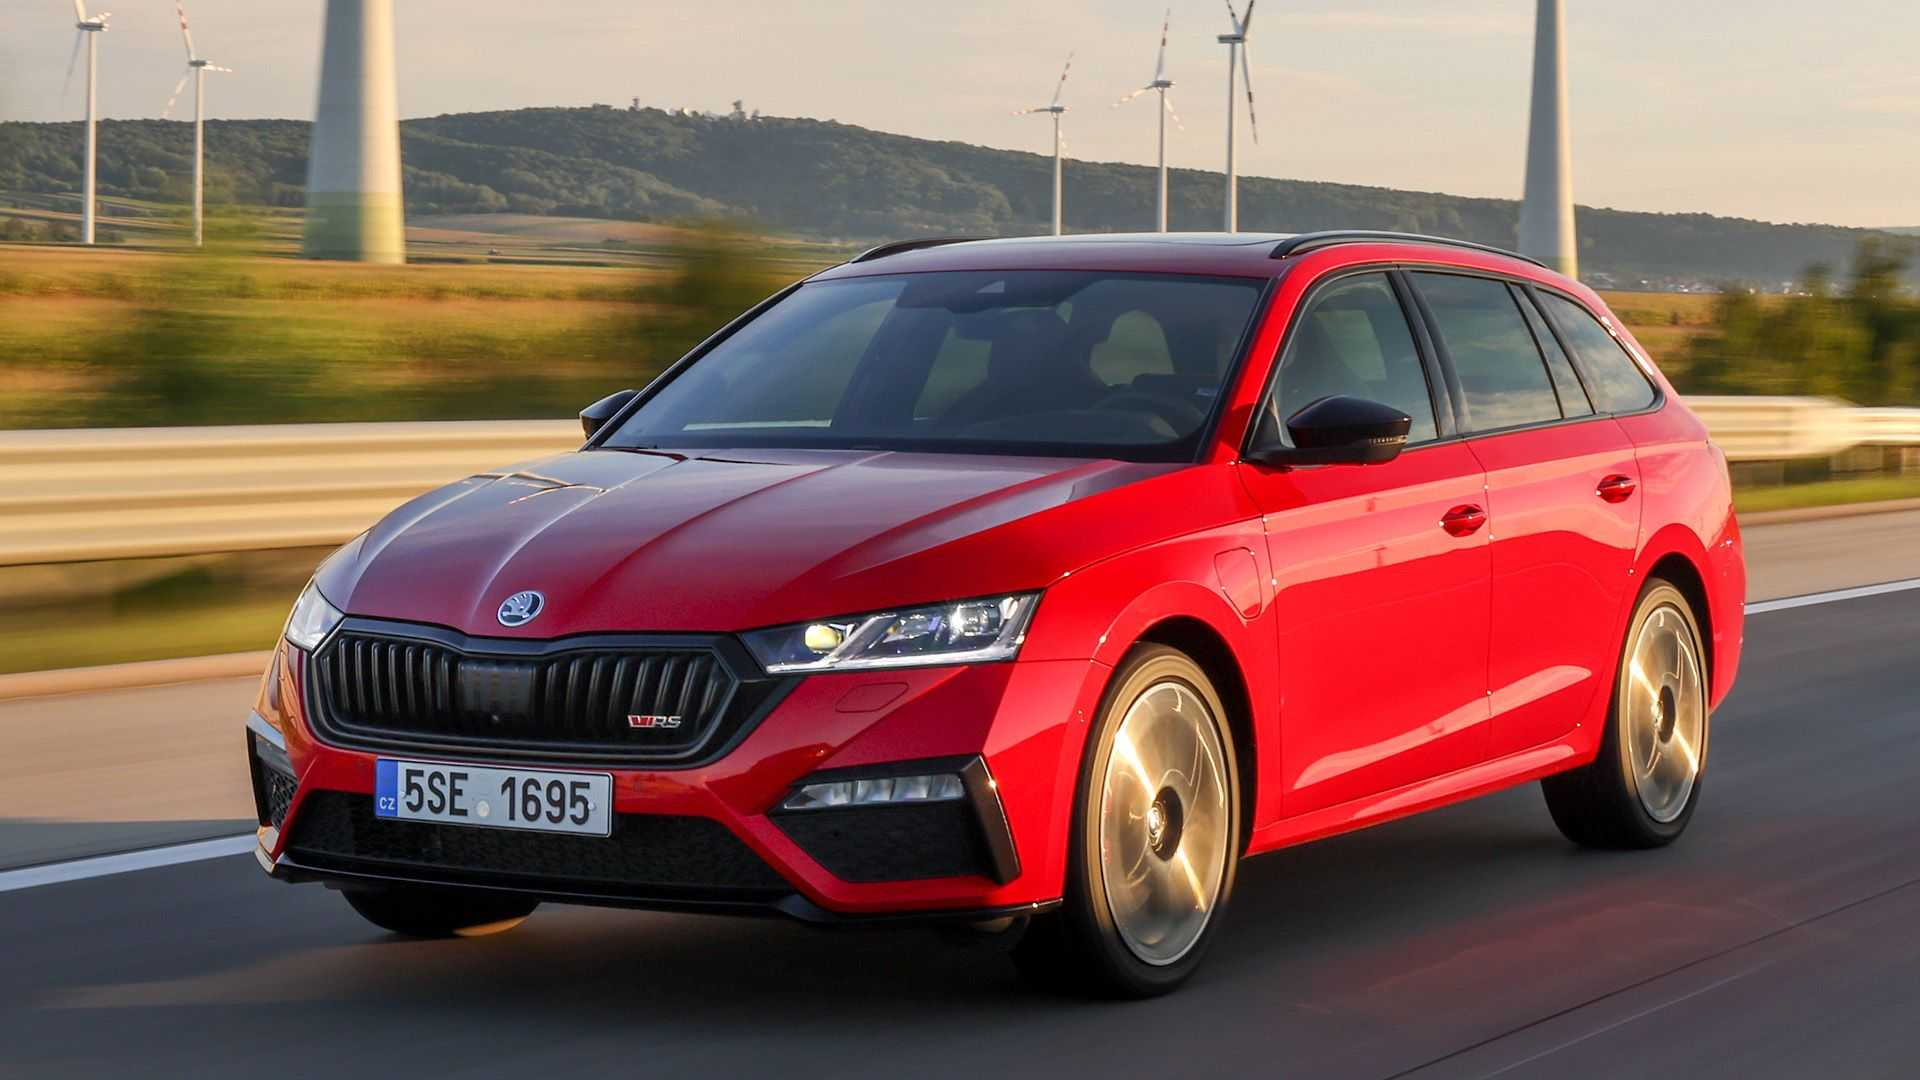 Skoda Octavia Rs Iv 2020 In The Test Charging Master Archyde